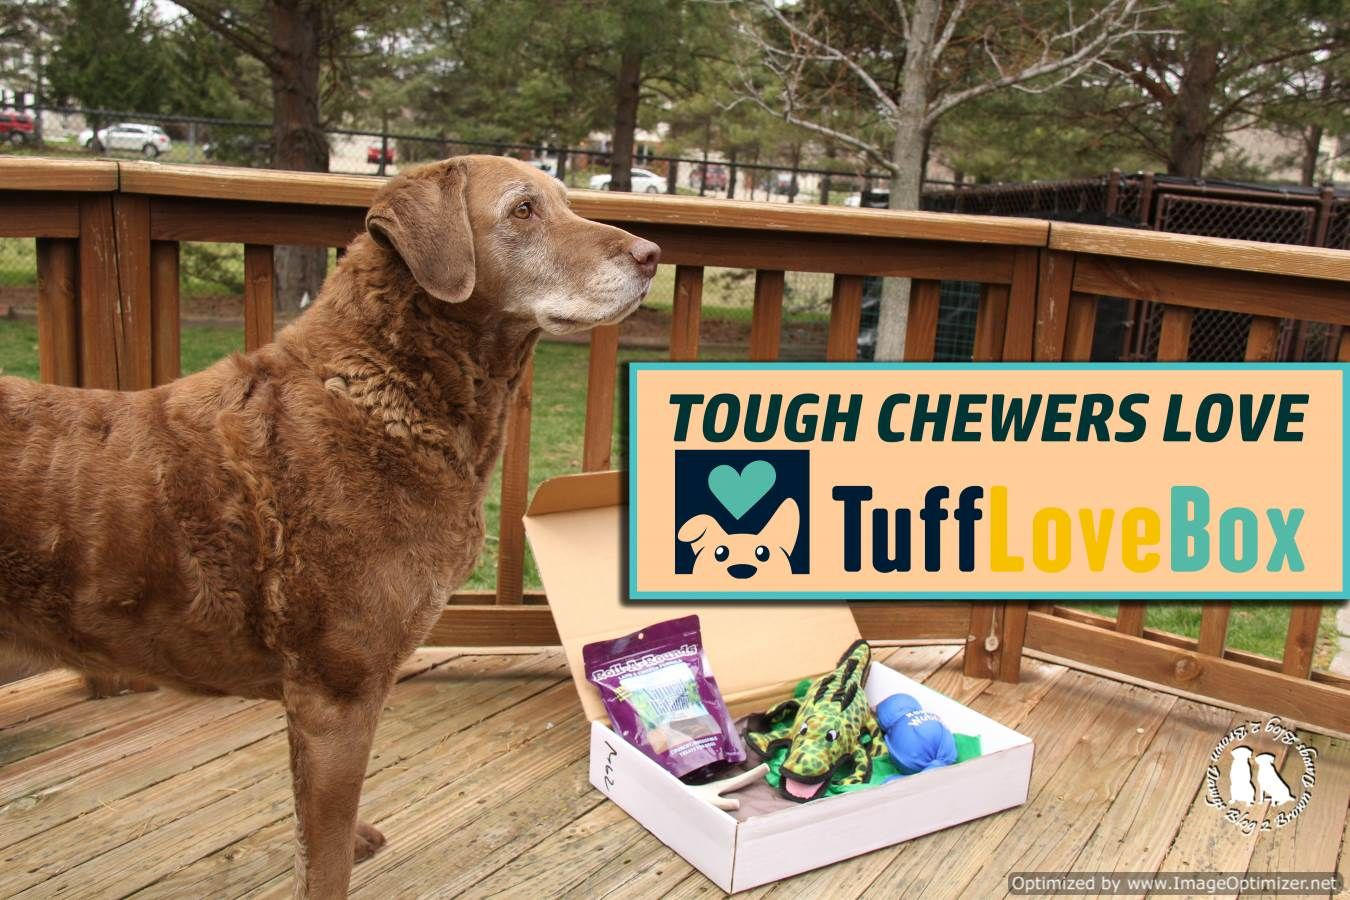 We Are Reviewing Tufflovebox Which Is A Monthly Subscription Box